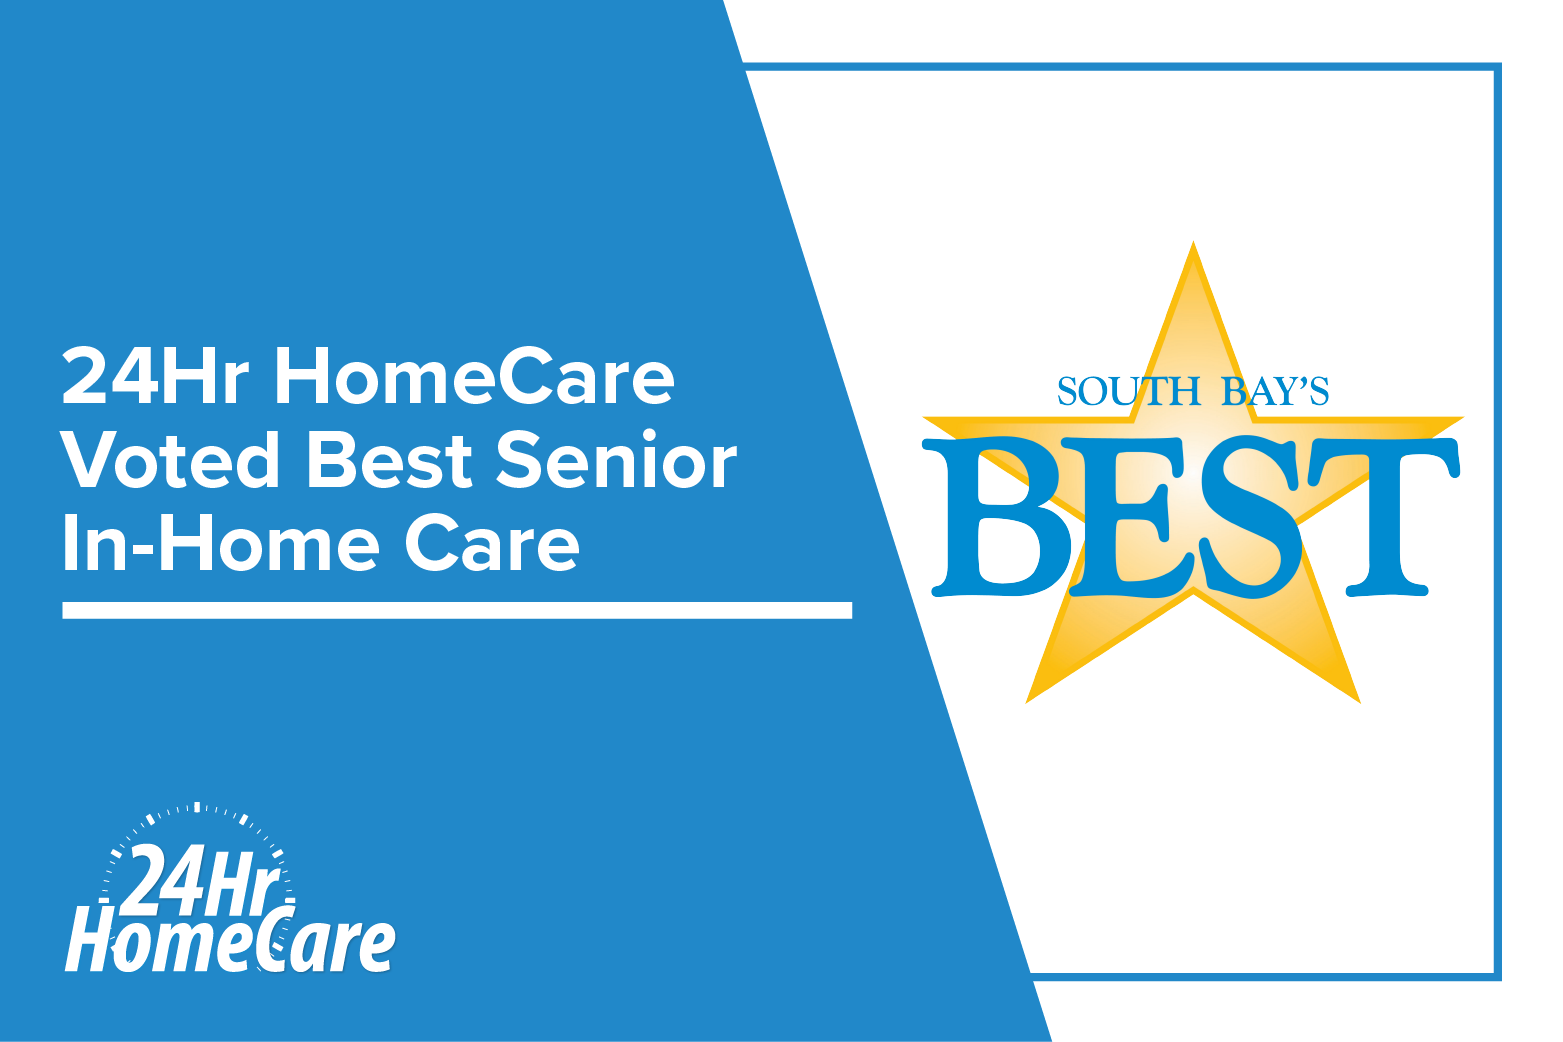 24Hr HomeCare Named South Bay's Best Senior In-Home Care for the Sixth Time